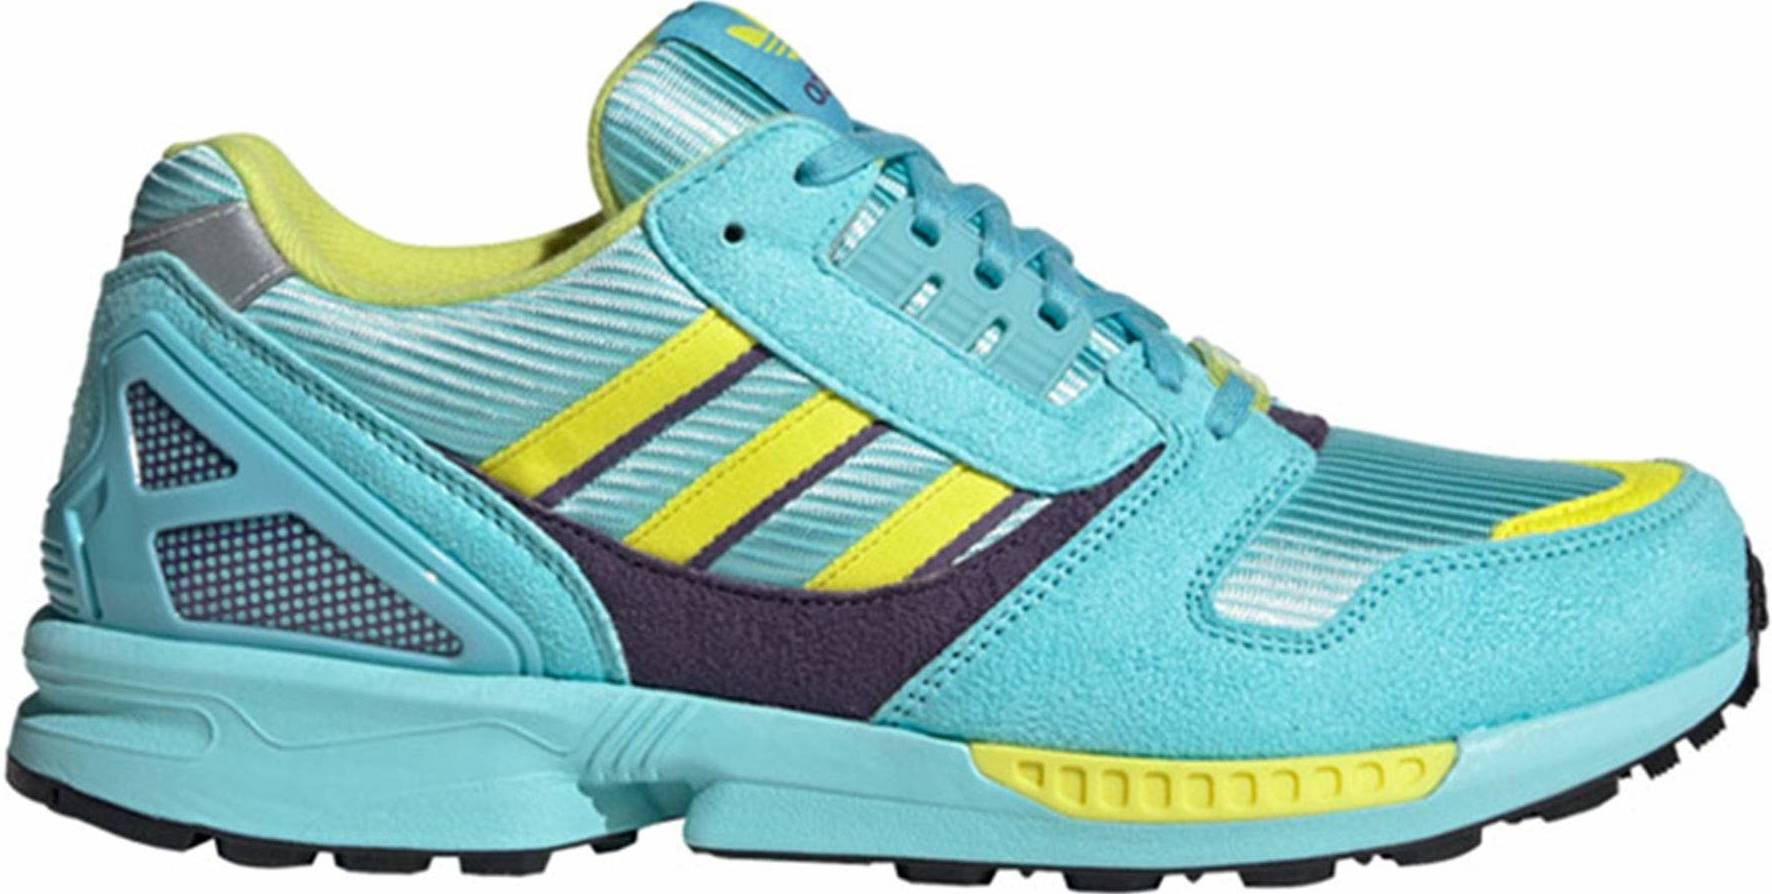 Adidas ZX 8000 sneakers in green grey (only $60) | RunRepeat